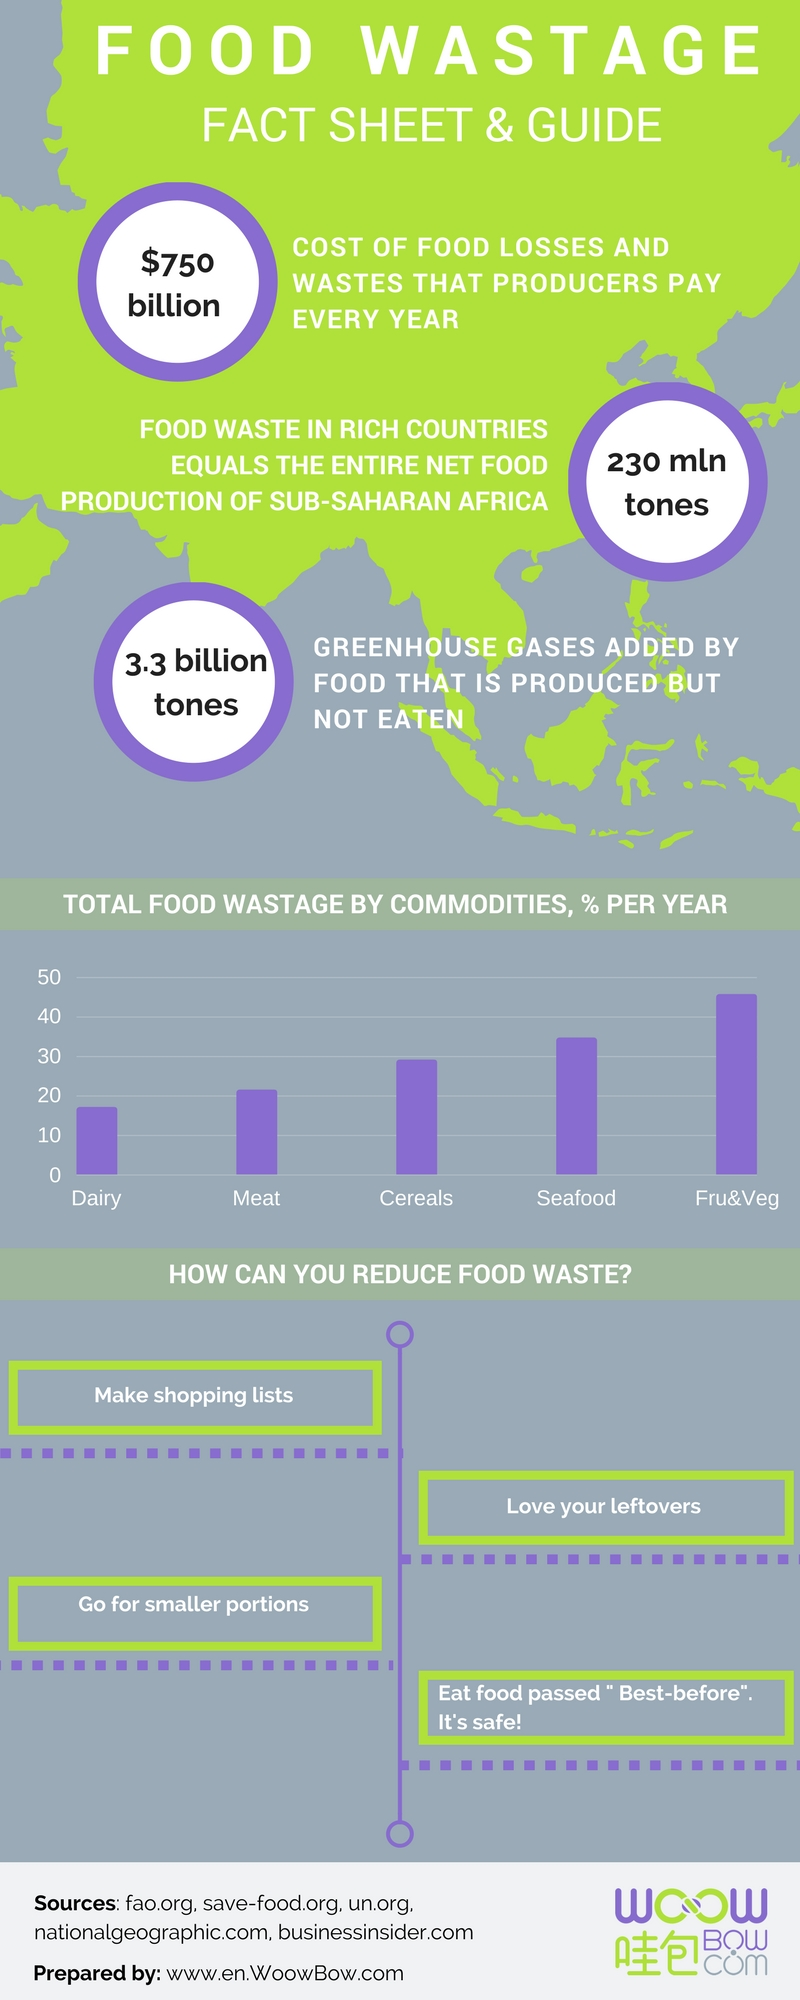 Food Waste Infographic 2017 Fact Sheet and guide